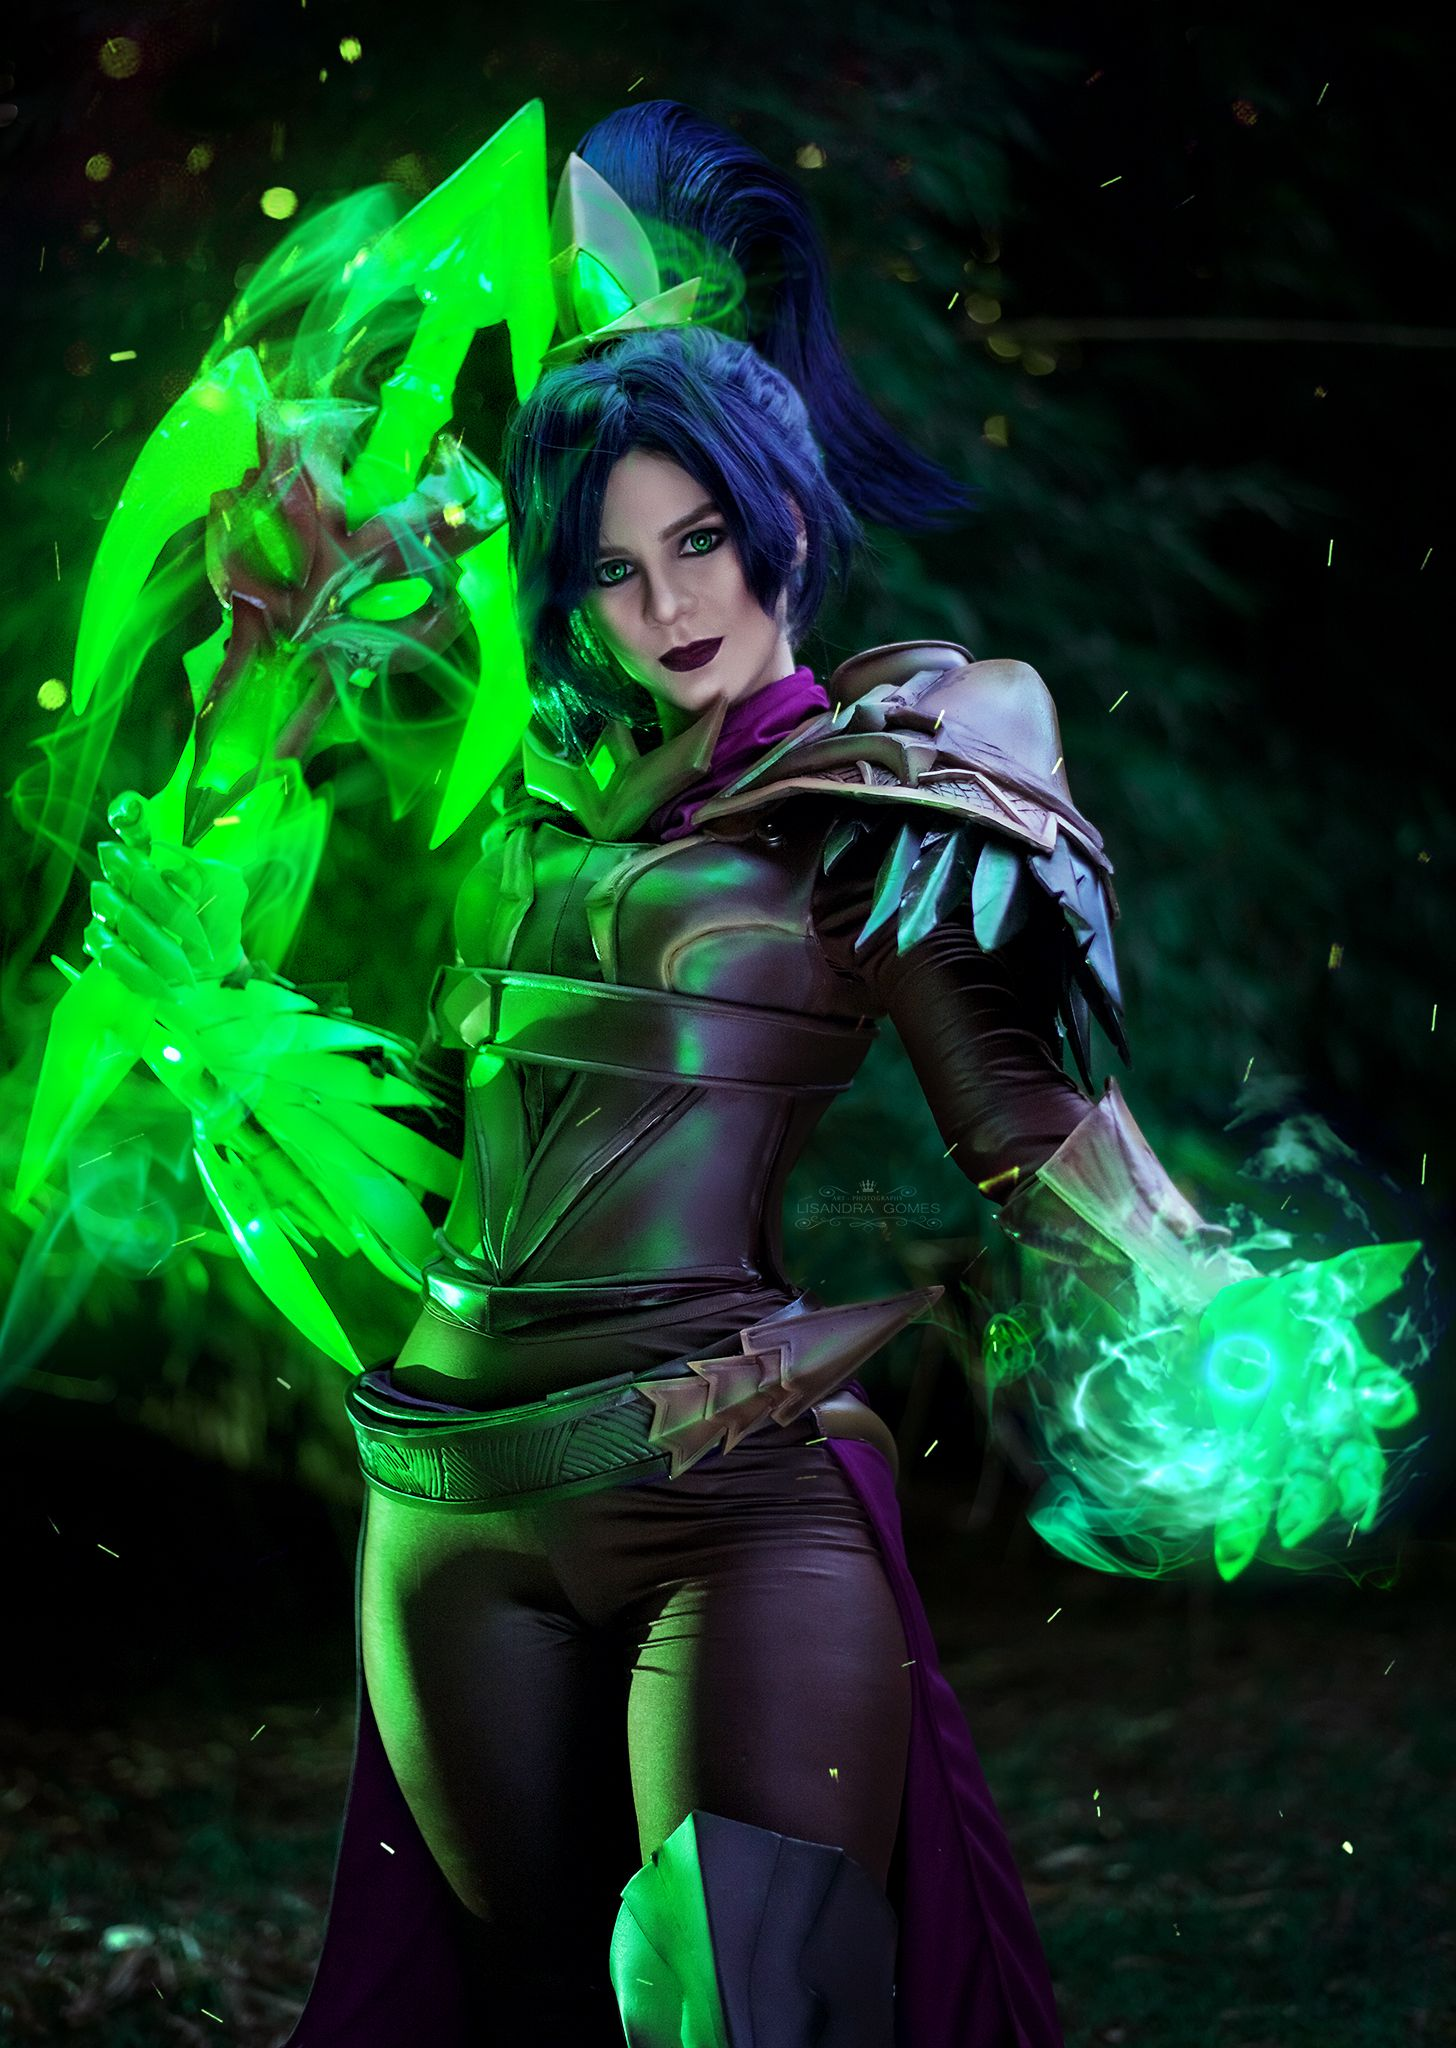 Soulstealer Vayne From League Of Legends Lol Leagueoflegends Vayne Soulstealervayne Gosu League Of Legends Cosplay Photo And Video